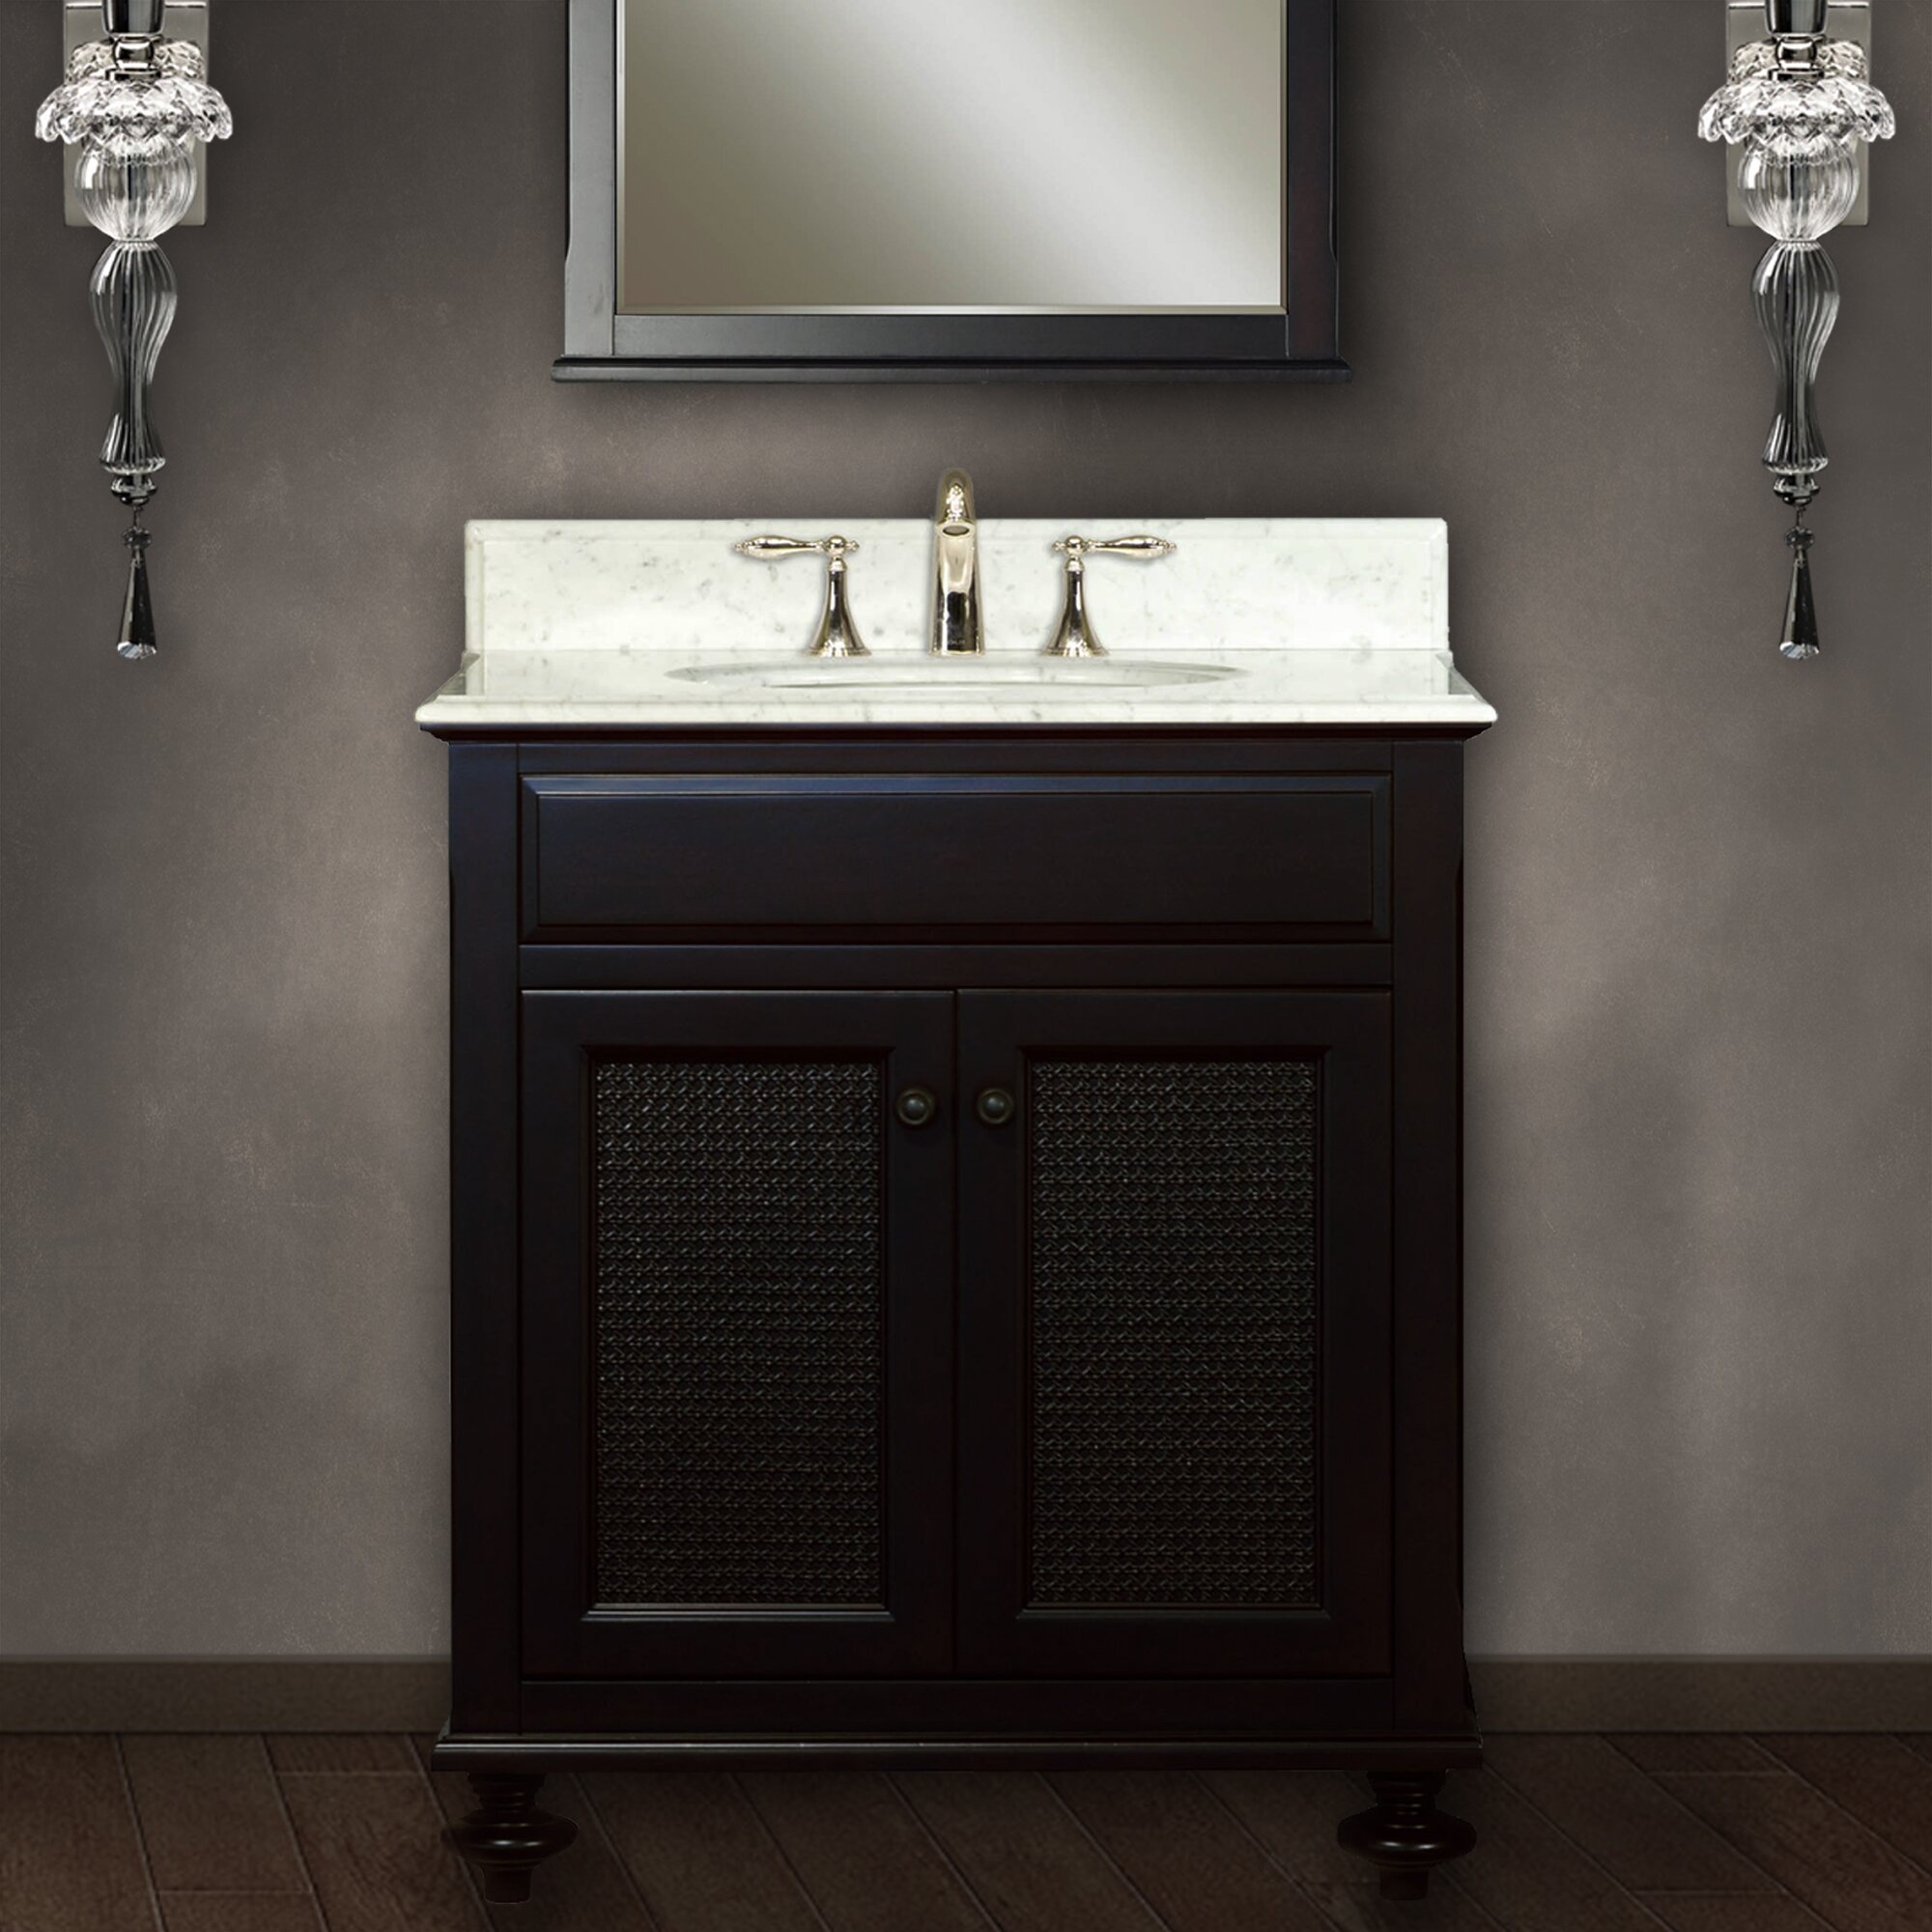 30 quot amare wall mounted bathroom vanity set with integrated sink by - Download Image 30 Inch Bathroom Vanity With Sink